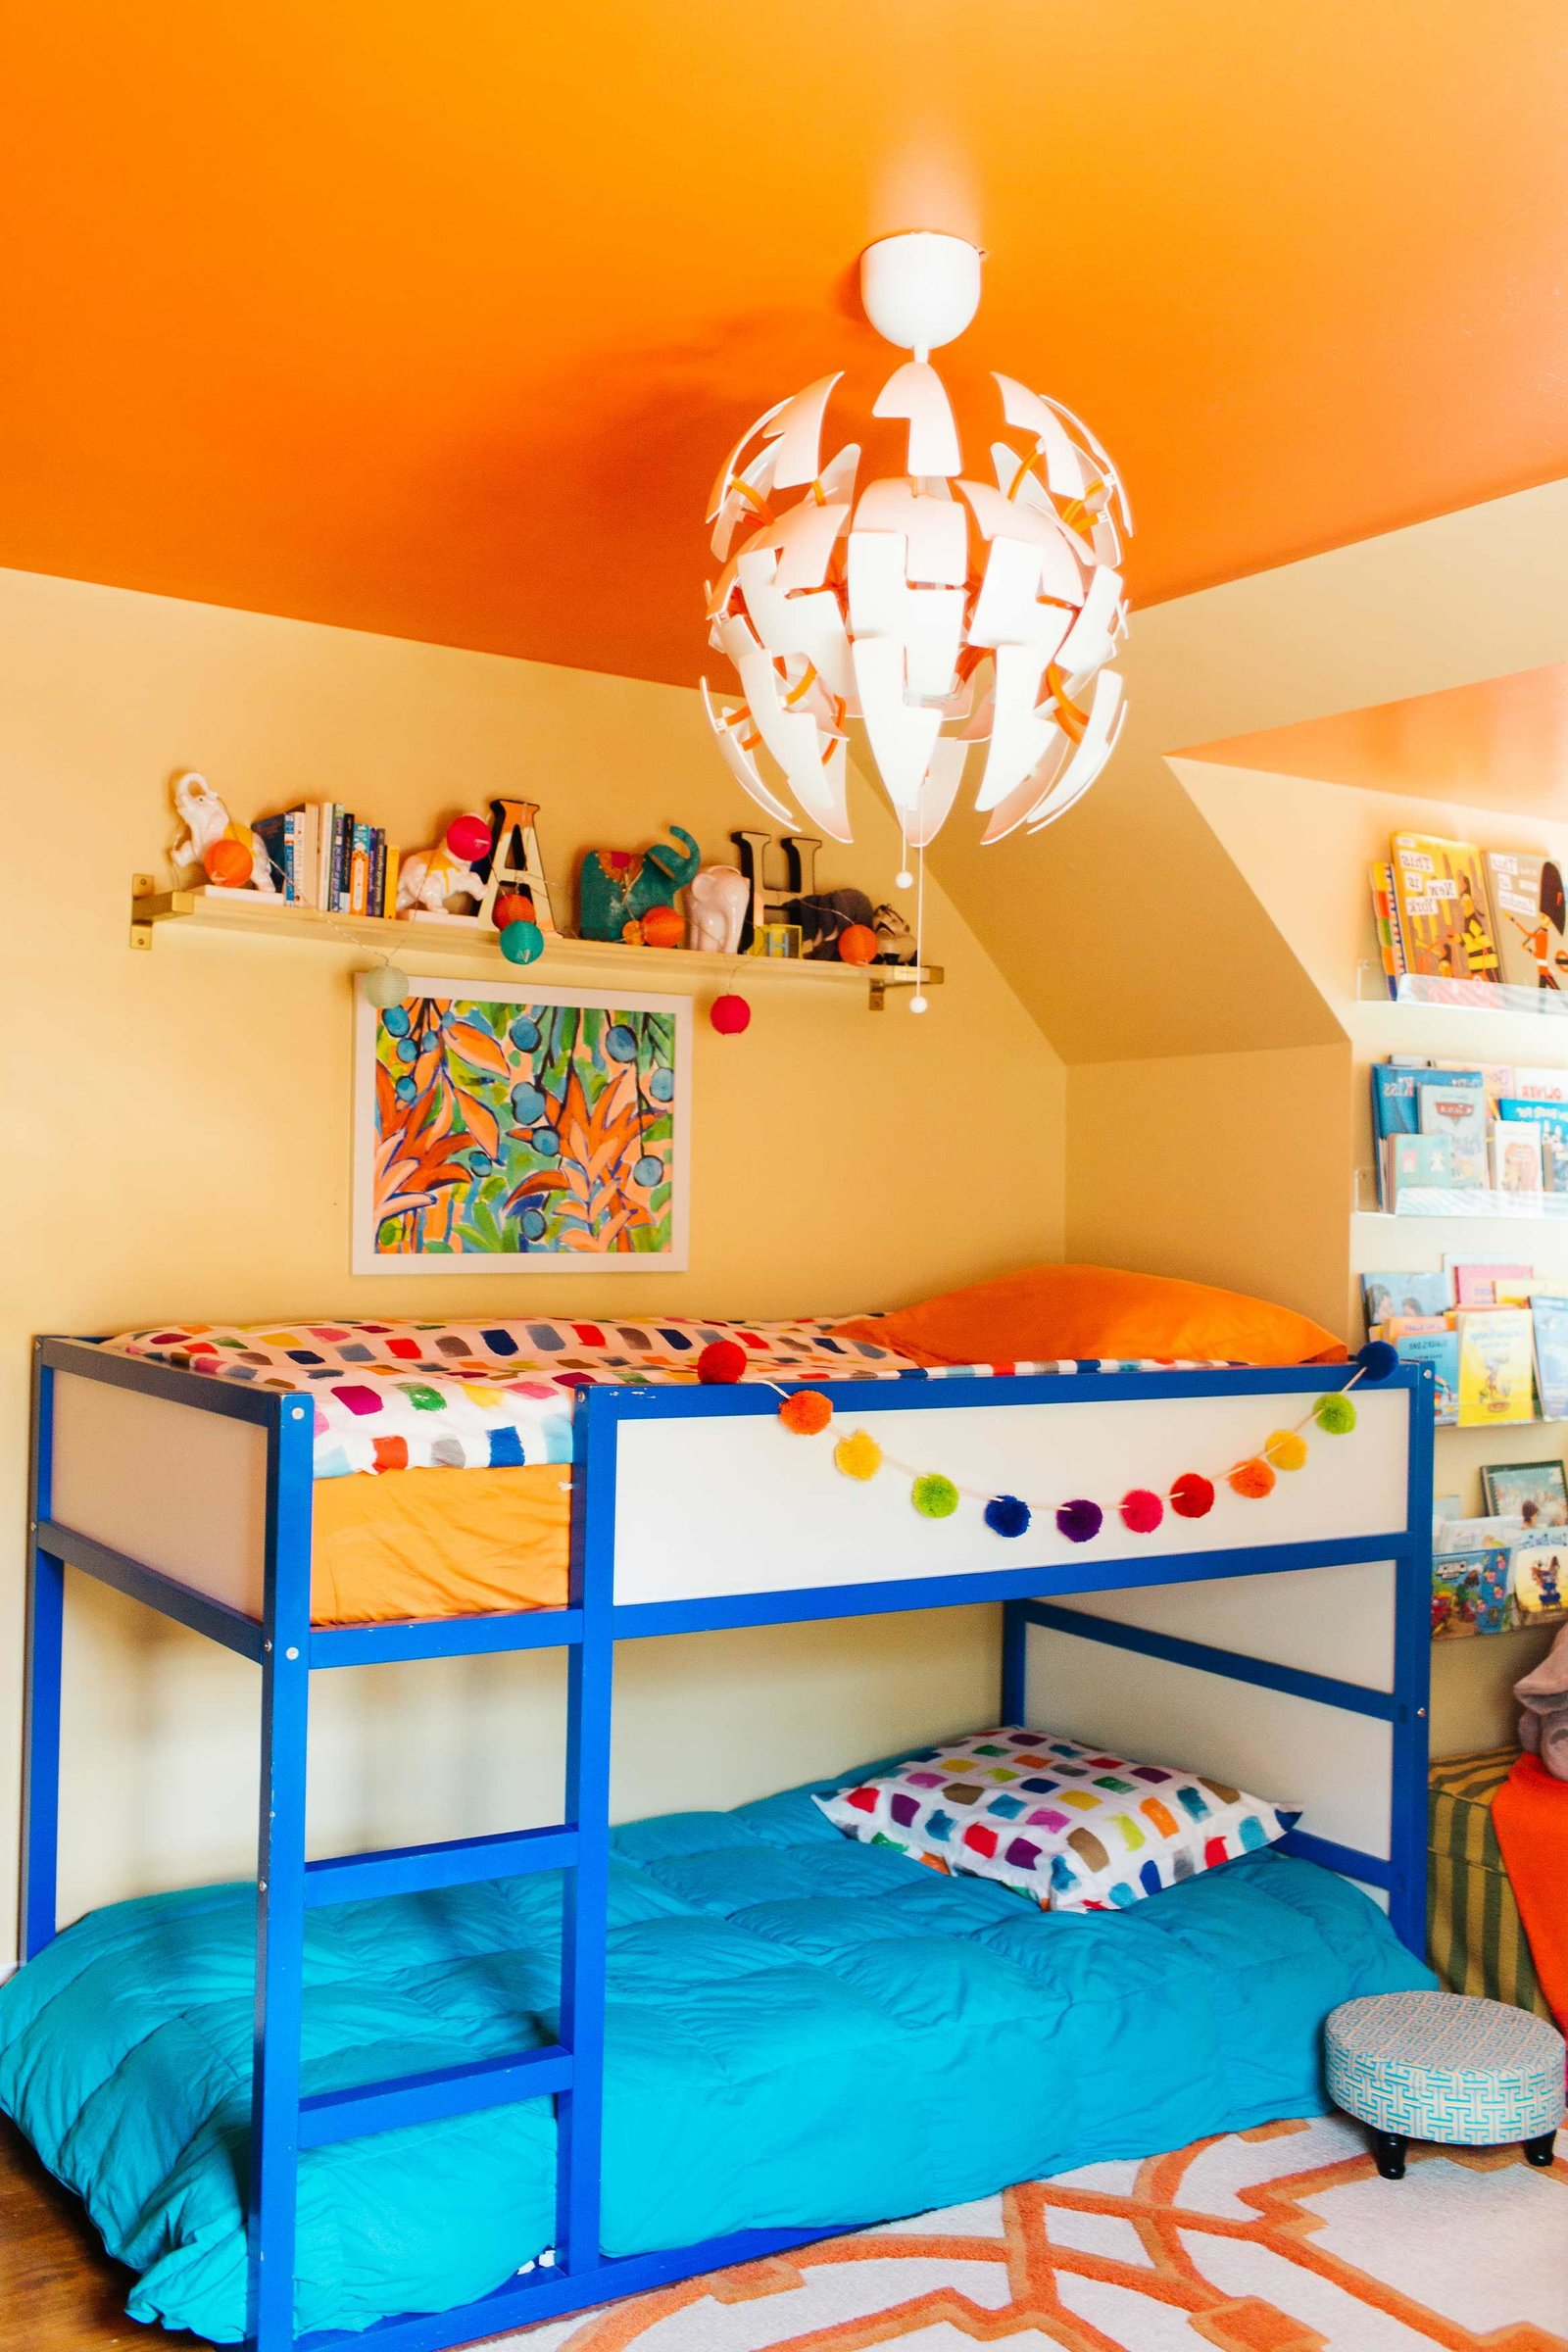 A boys bedroom with blue bunk beds and pom pom garland.